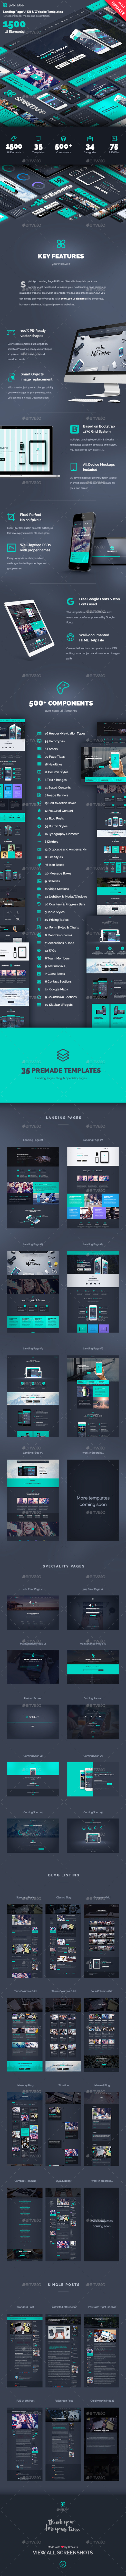 SpiritApp Landing Page UI Kit & Premade Templates (Light Style) (User Interfaces)